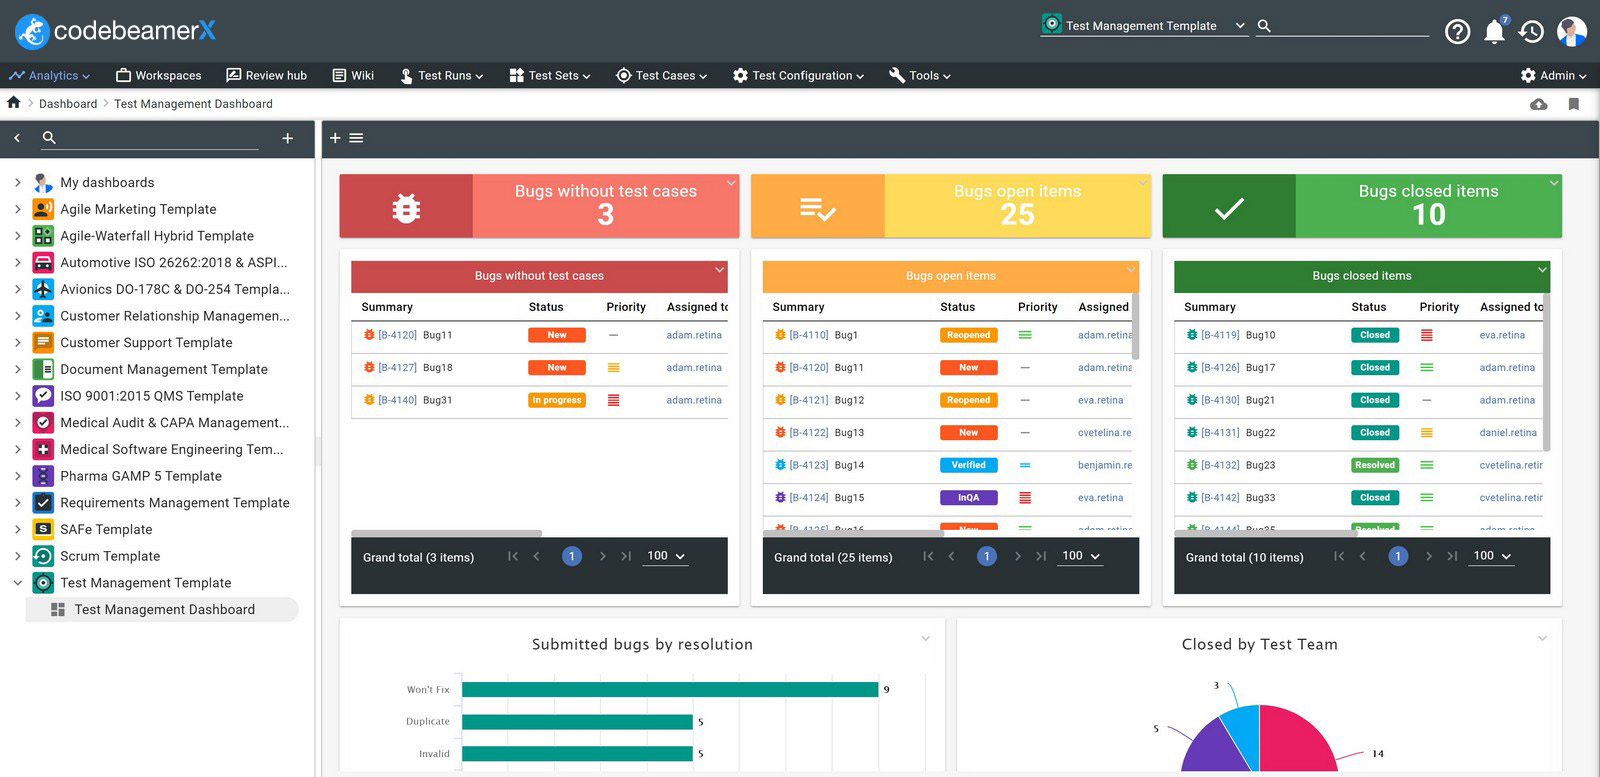 Test-management-dashboard-optimized-v4 Intland Retina